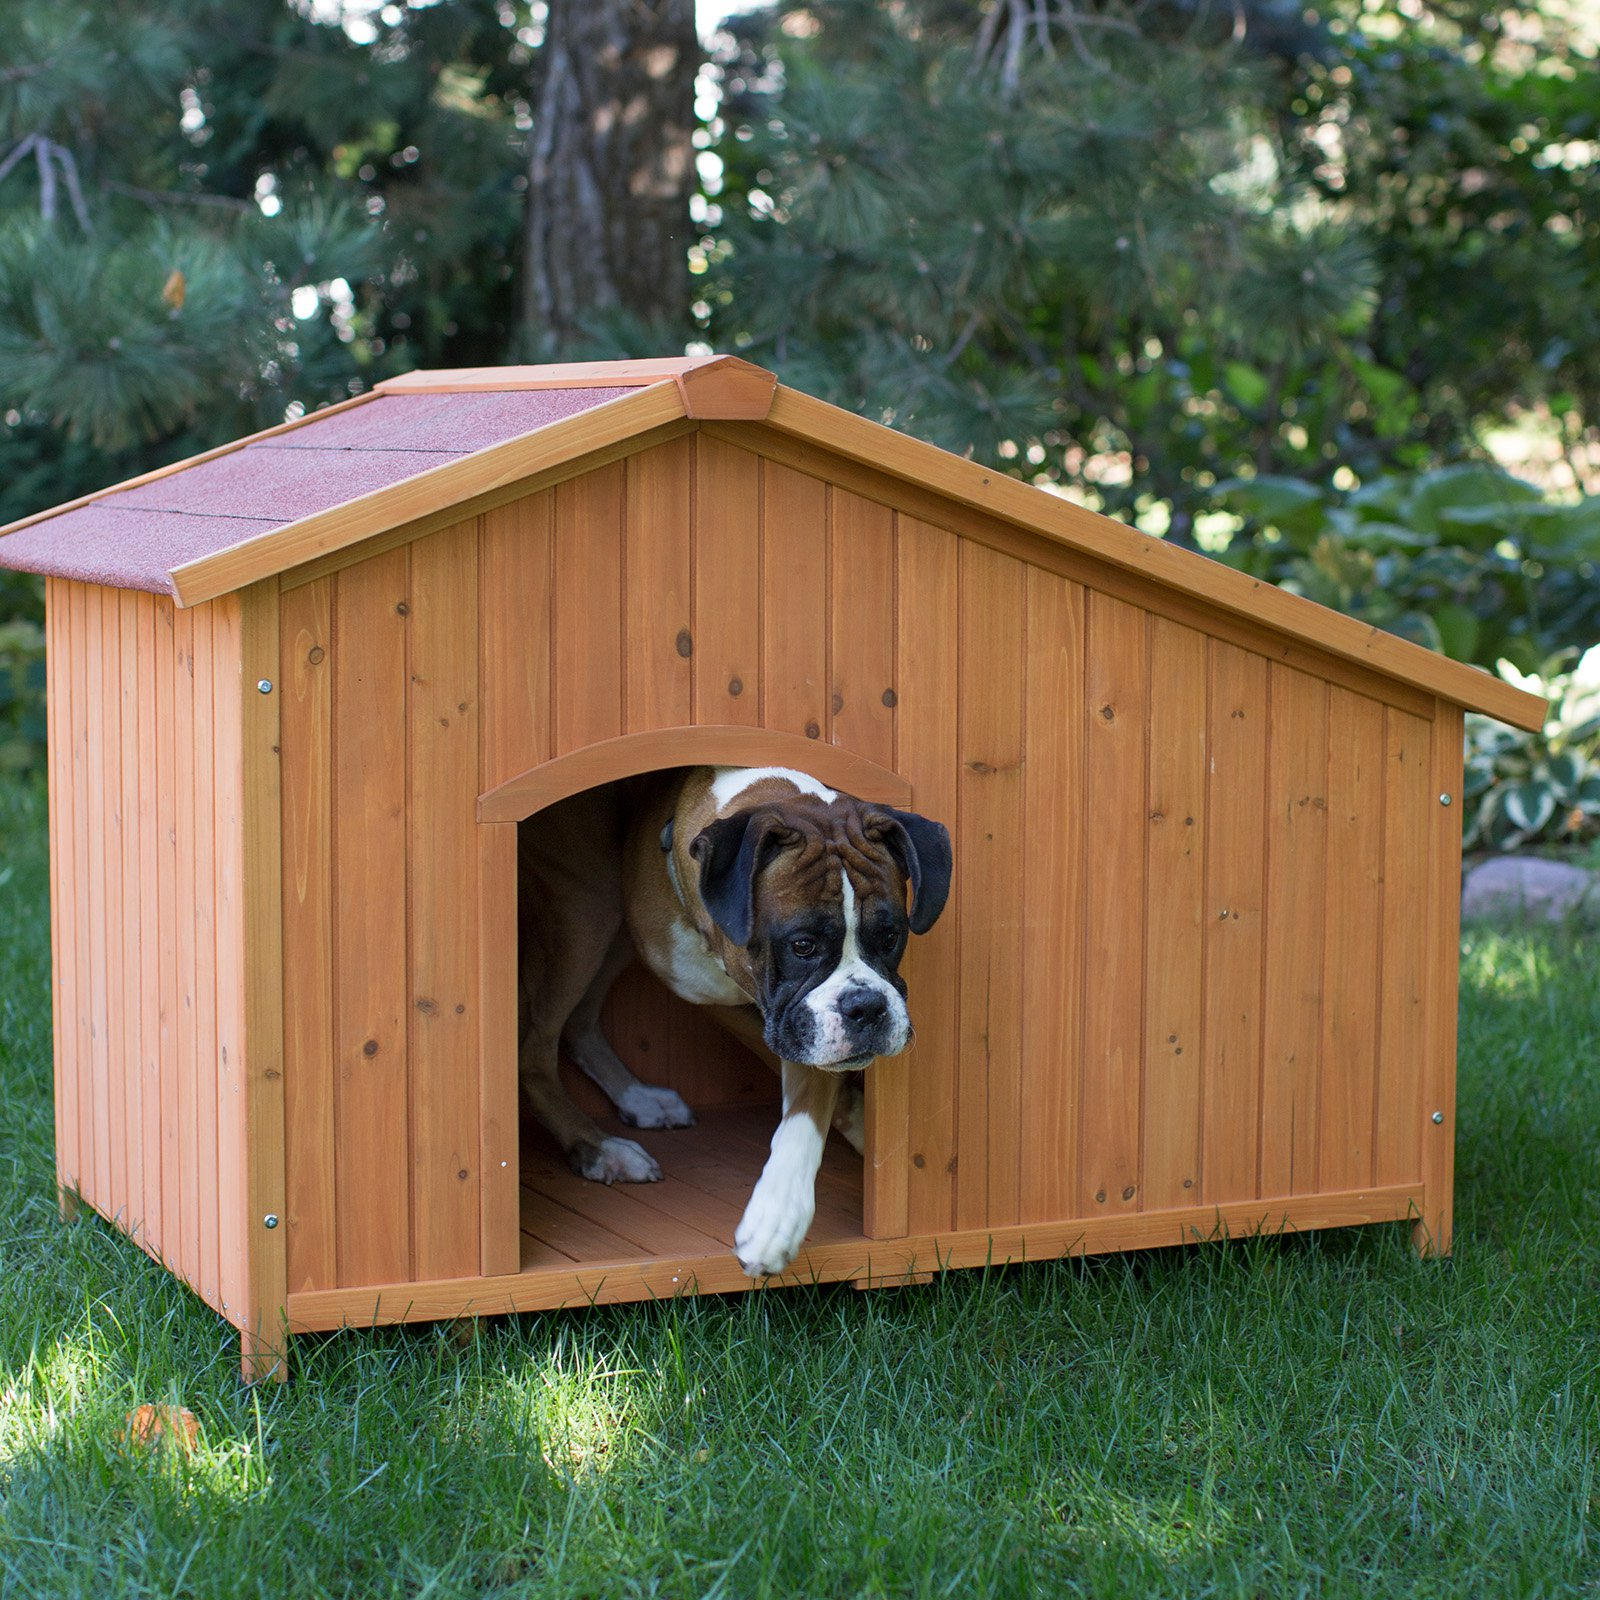 Boomer & George Asymmetrical Dog House, Medium